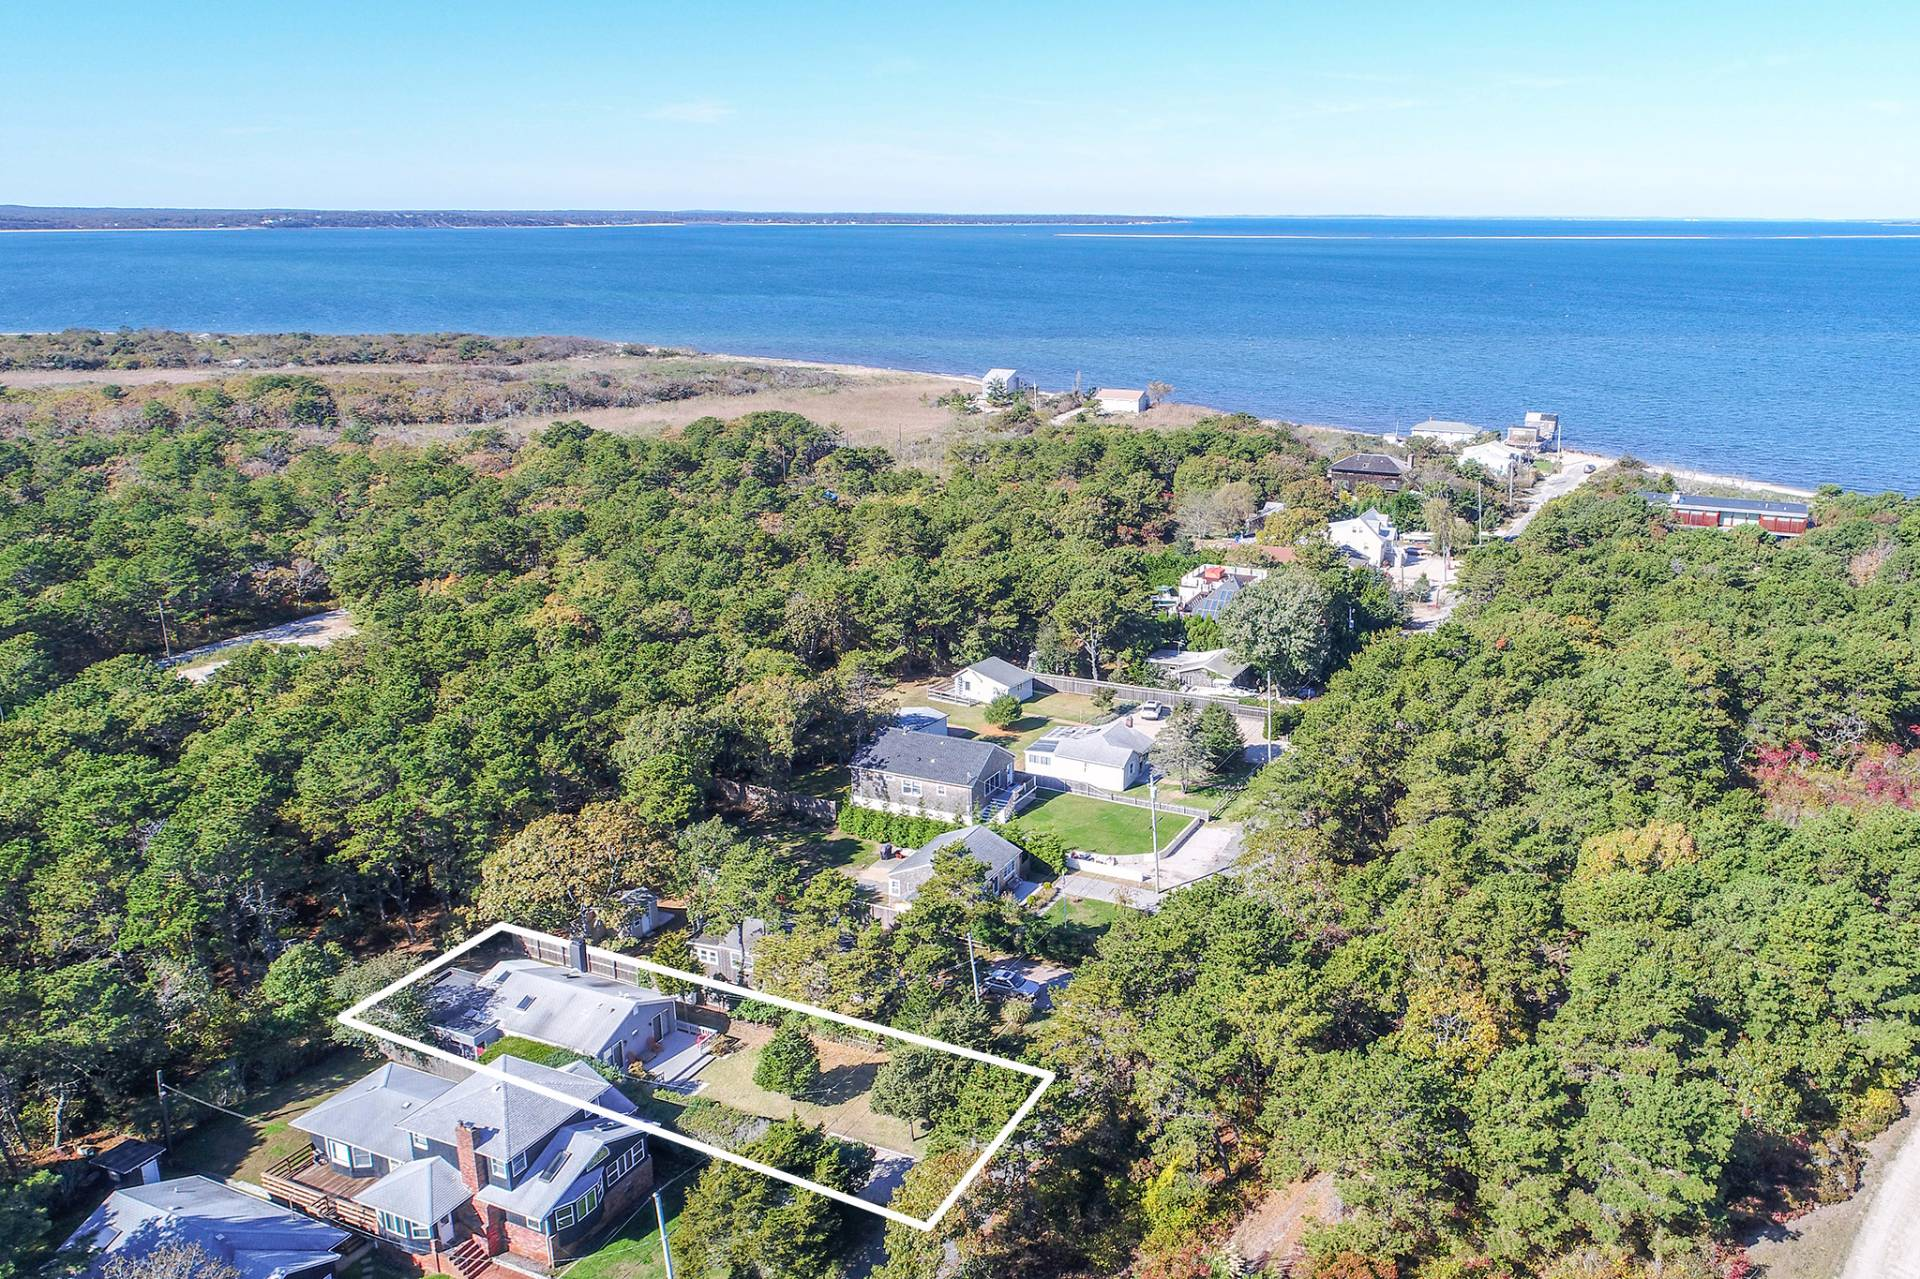 Single Family Home for Sale at Turnkey Home In Lazy Point 85 Mulford Lane, Amagansett, New York